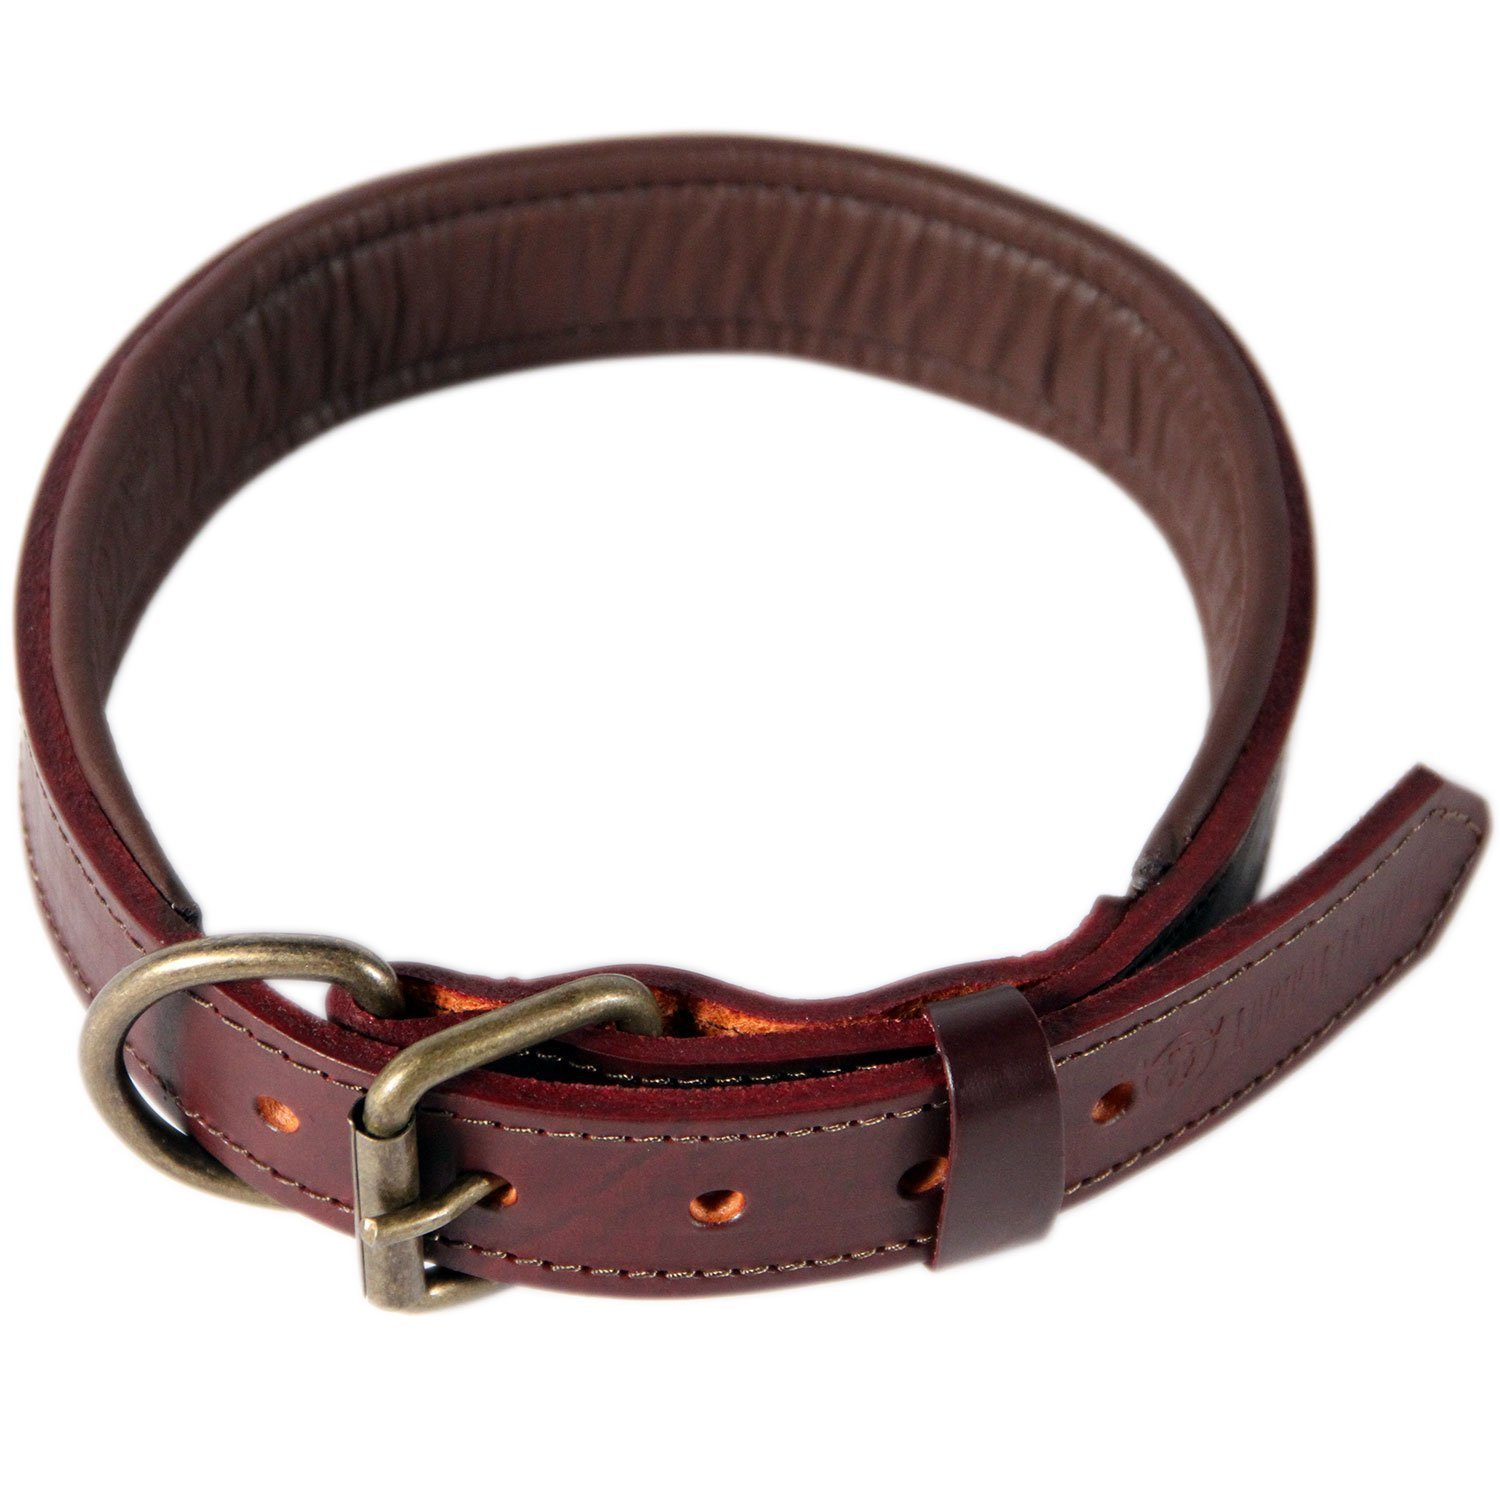 Logical Leather Padded Leather Dog Collar, Brown - L